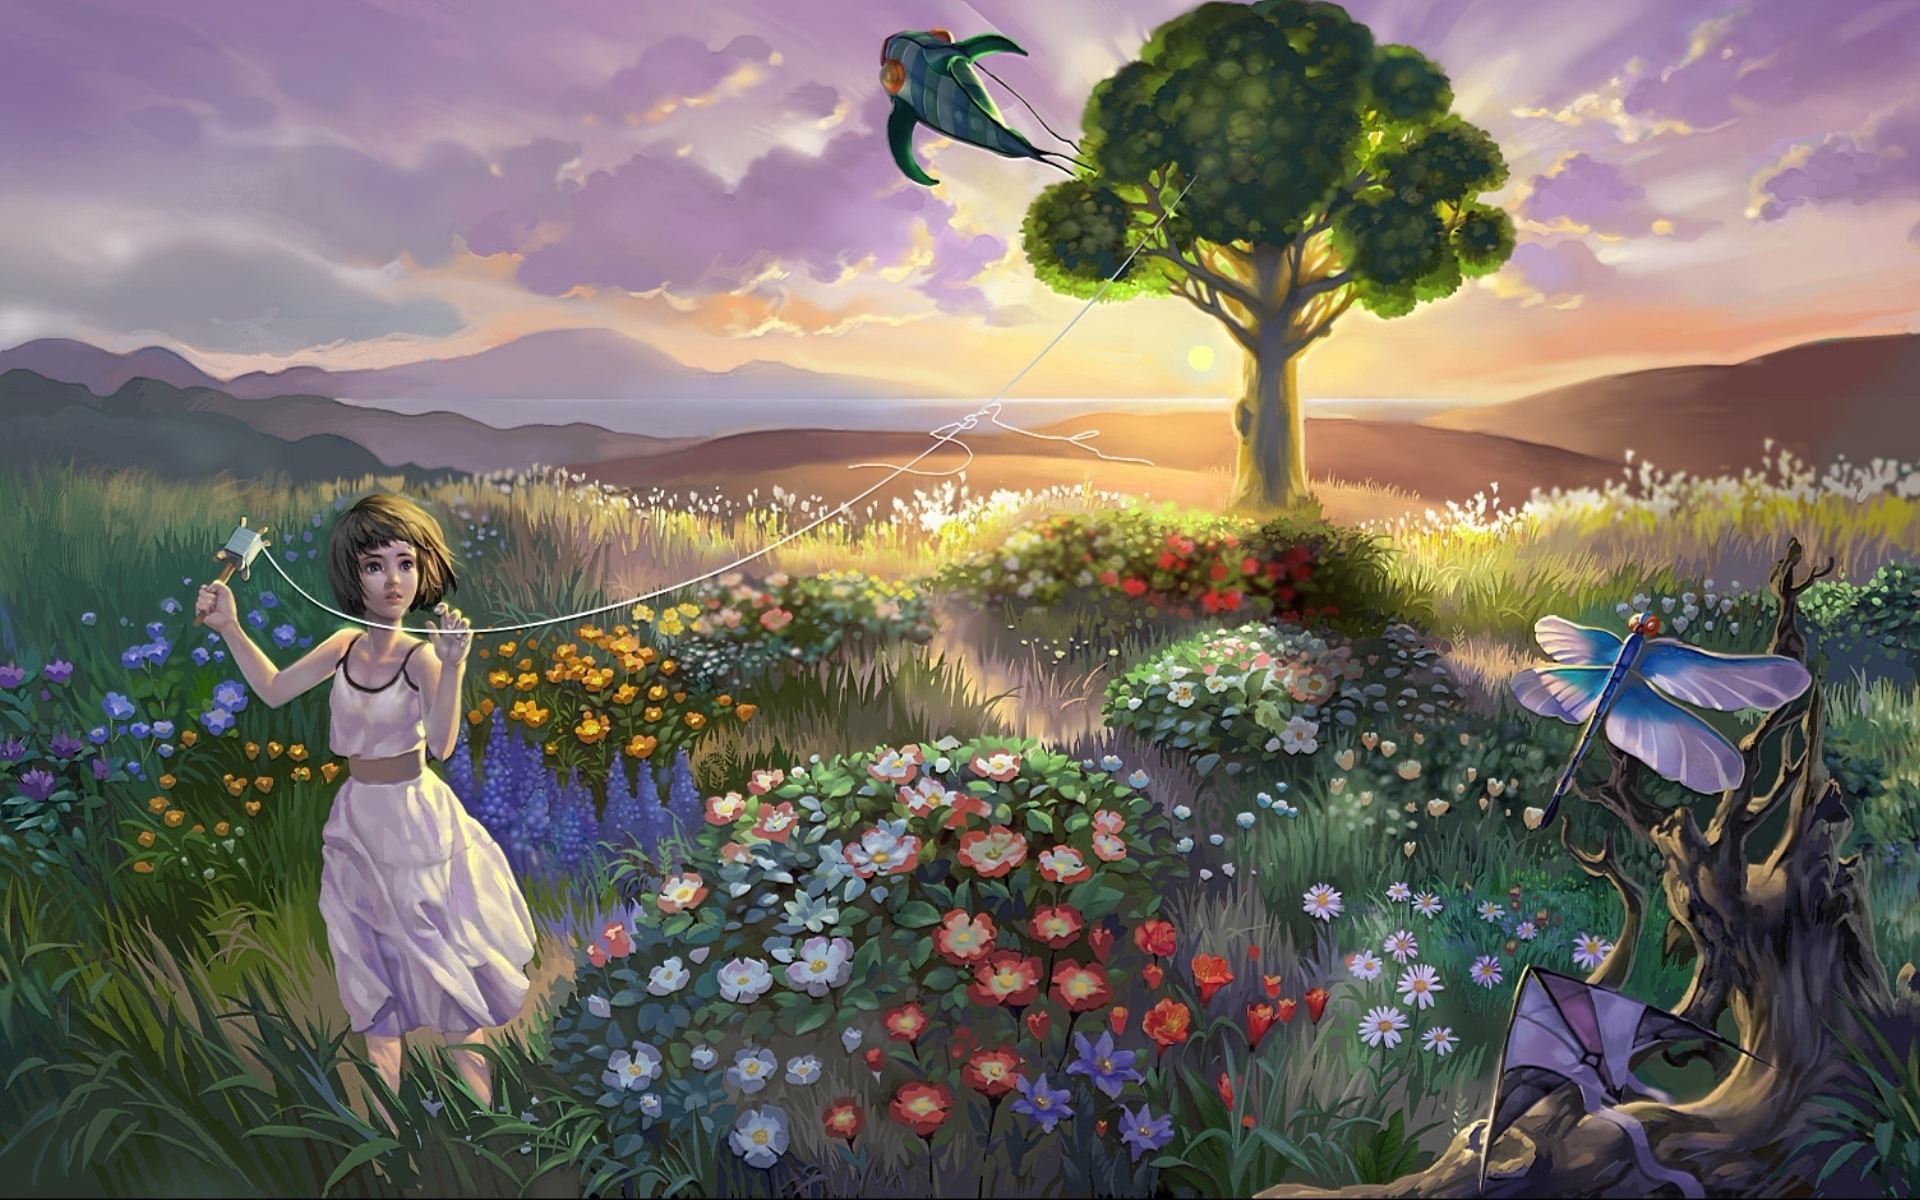 landscape child baby grass flowers birds kite x